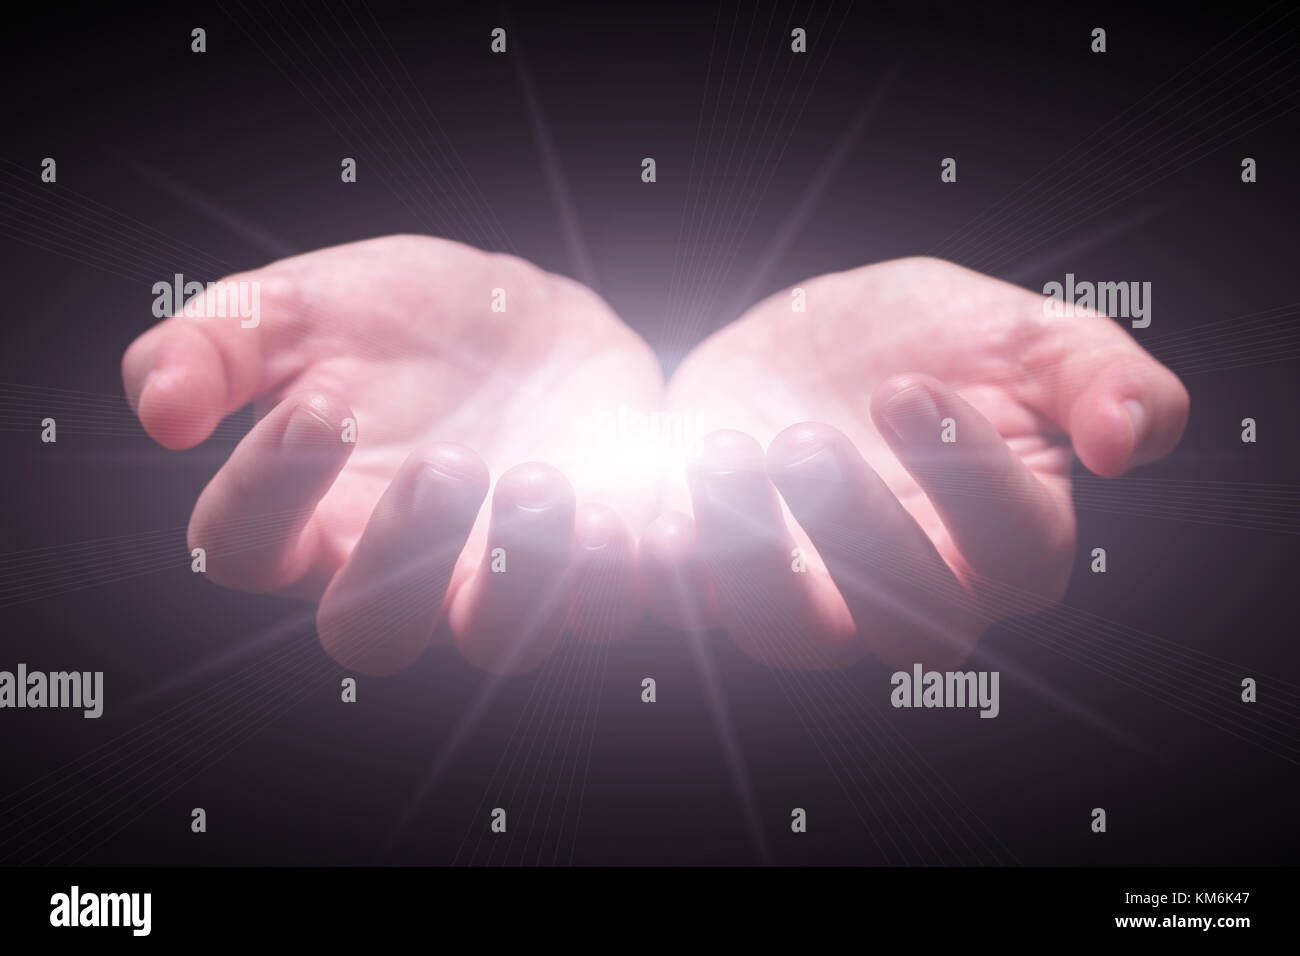 Woman hands cupped protecting and holding bright glowing radiant shining light. Emitting rays or beams expanding. - Stock Image